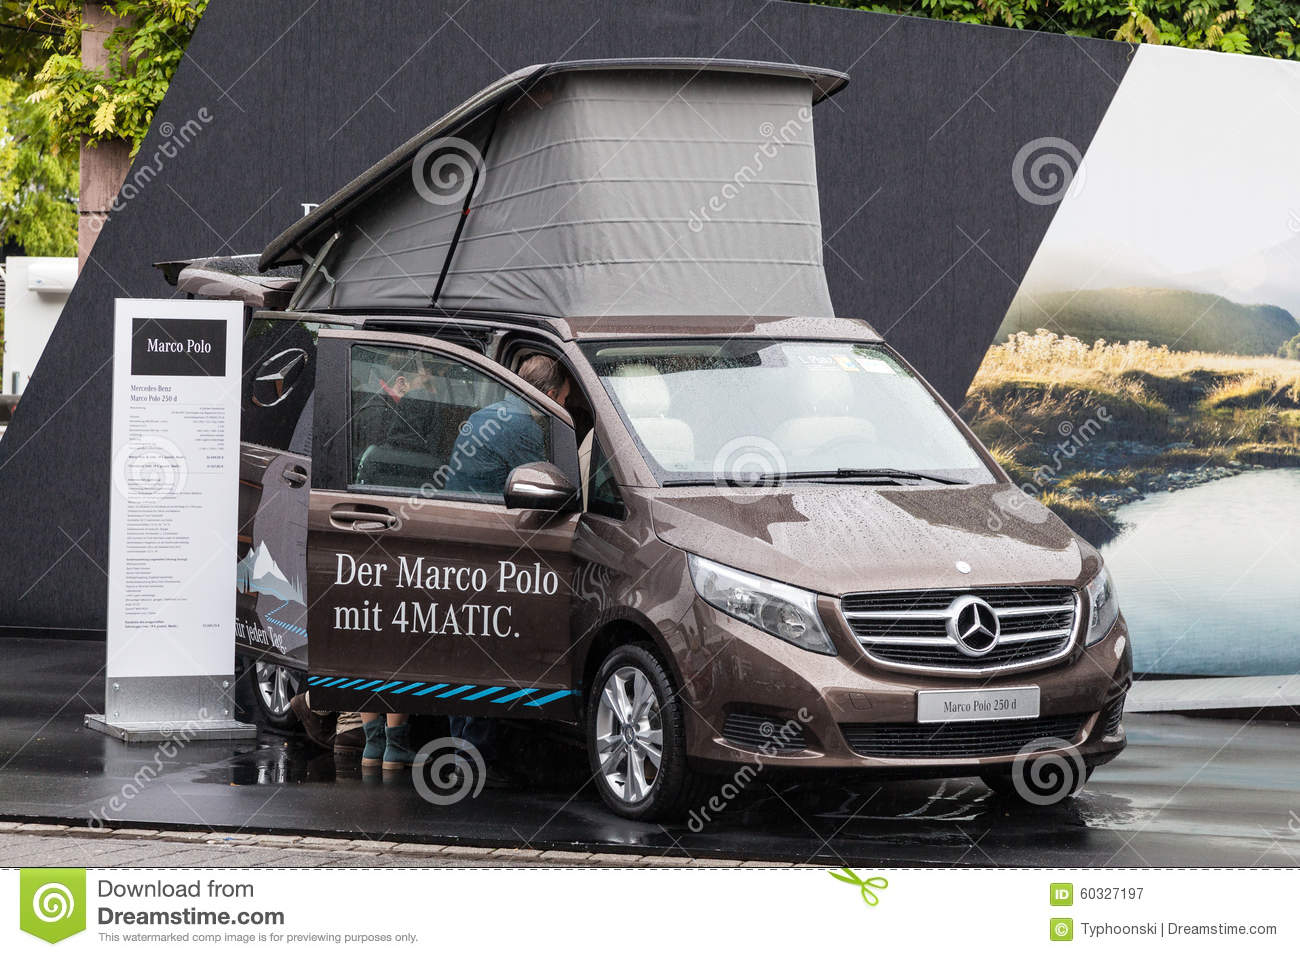 mercedes benz marco polo l 39 iaa 2015 photographie ditorial image 60327197. Black Bedroom Furniture Sets. Home Design Ideas